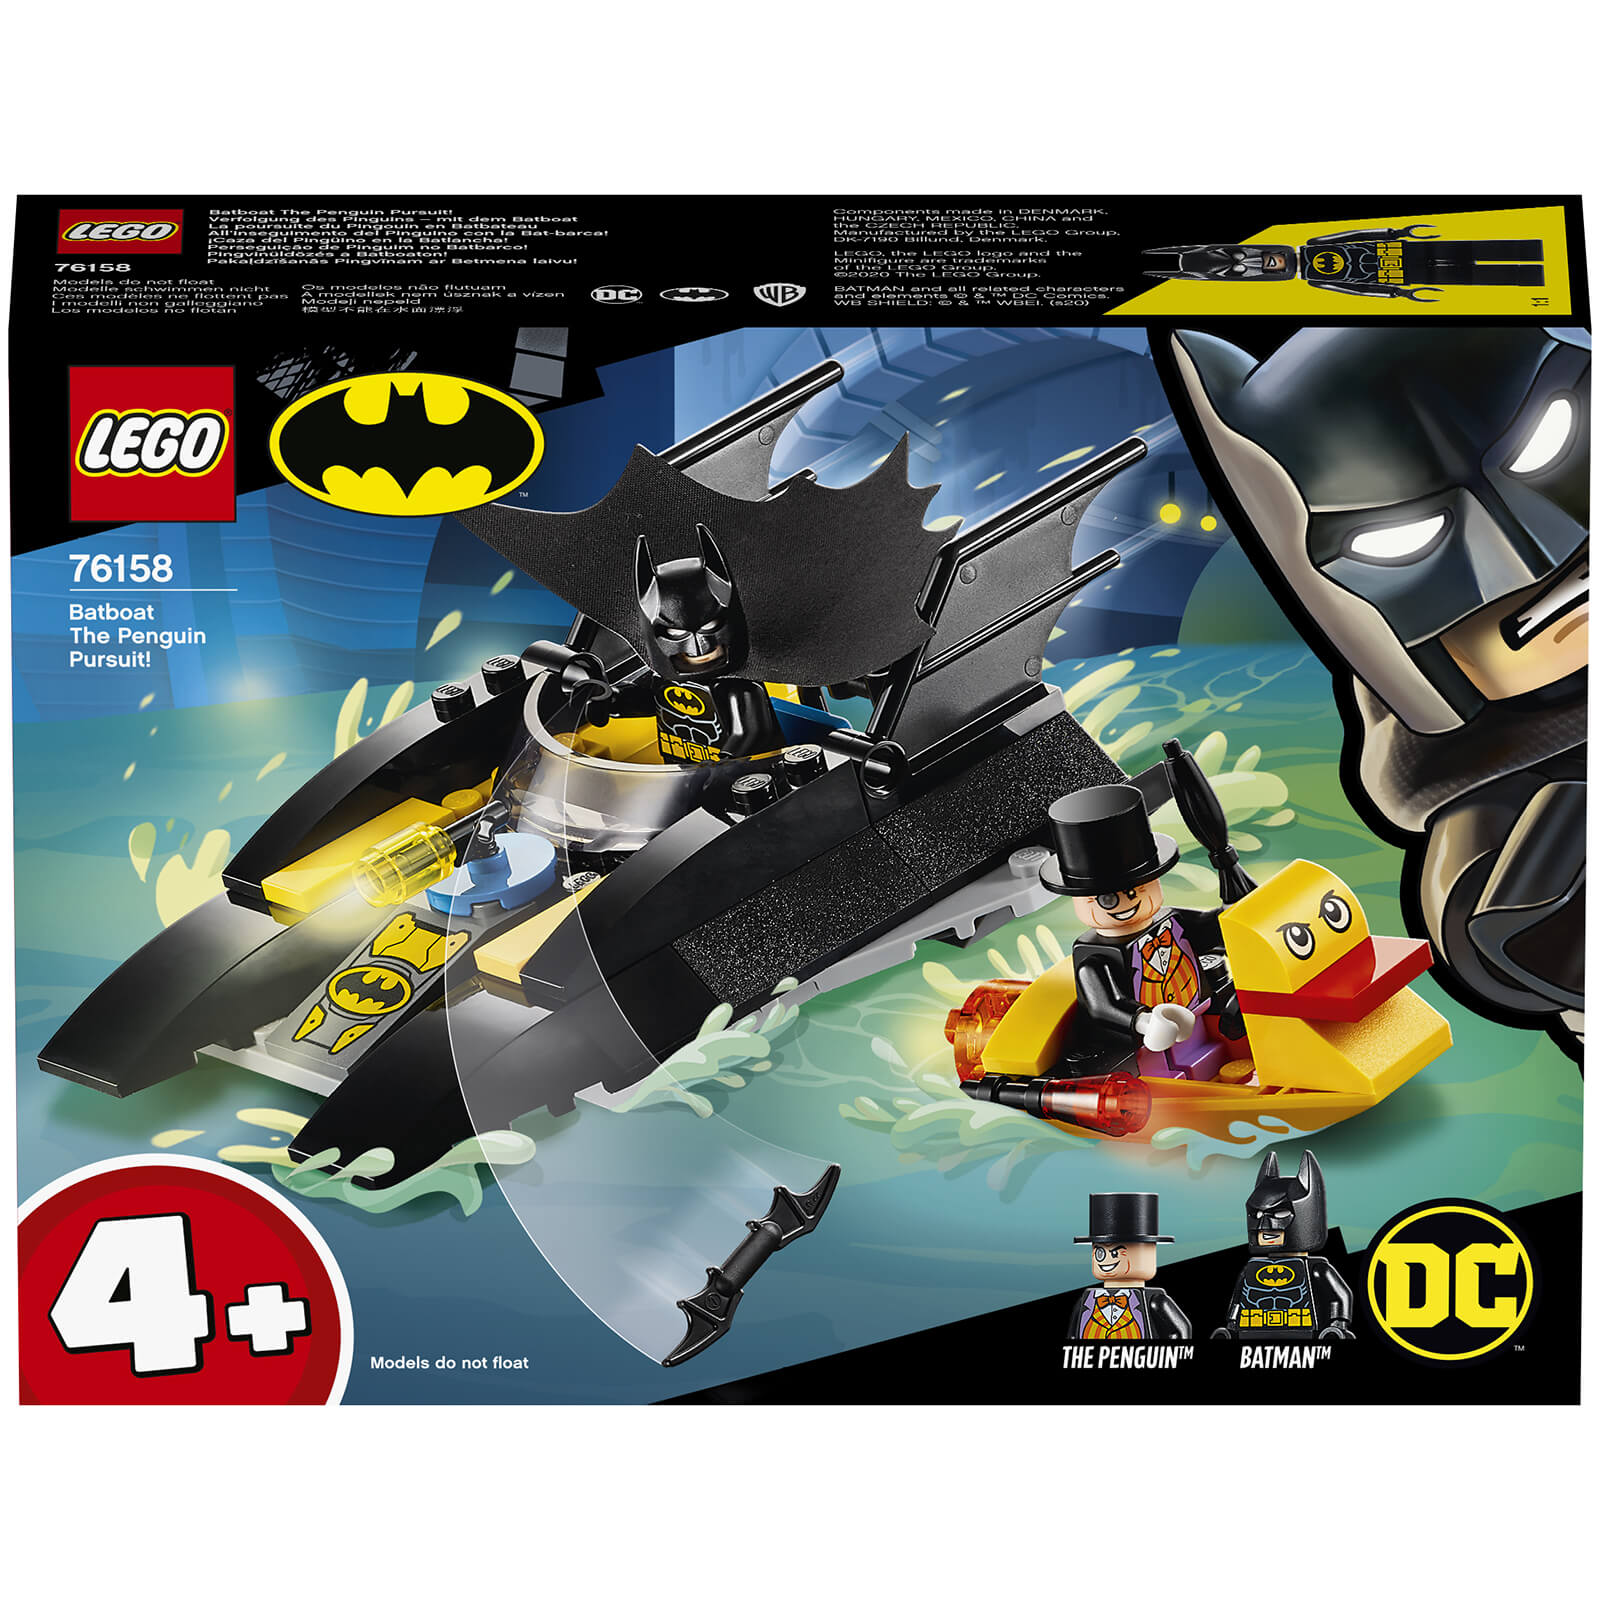 Image of 76158 LEGO® DC COMICS SUPER HEROES Pursuit of the penguin with the Batboat